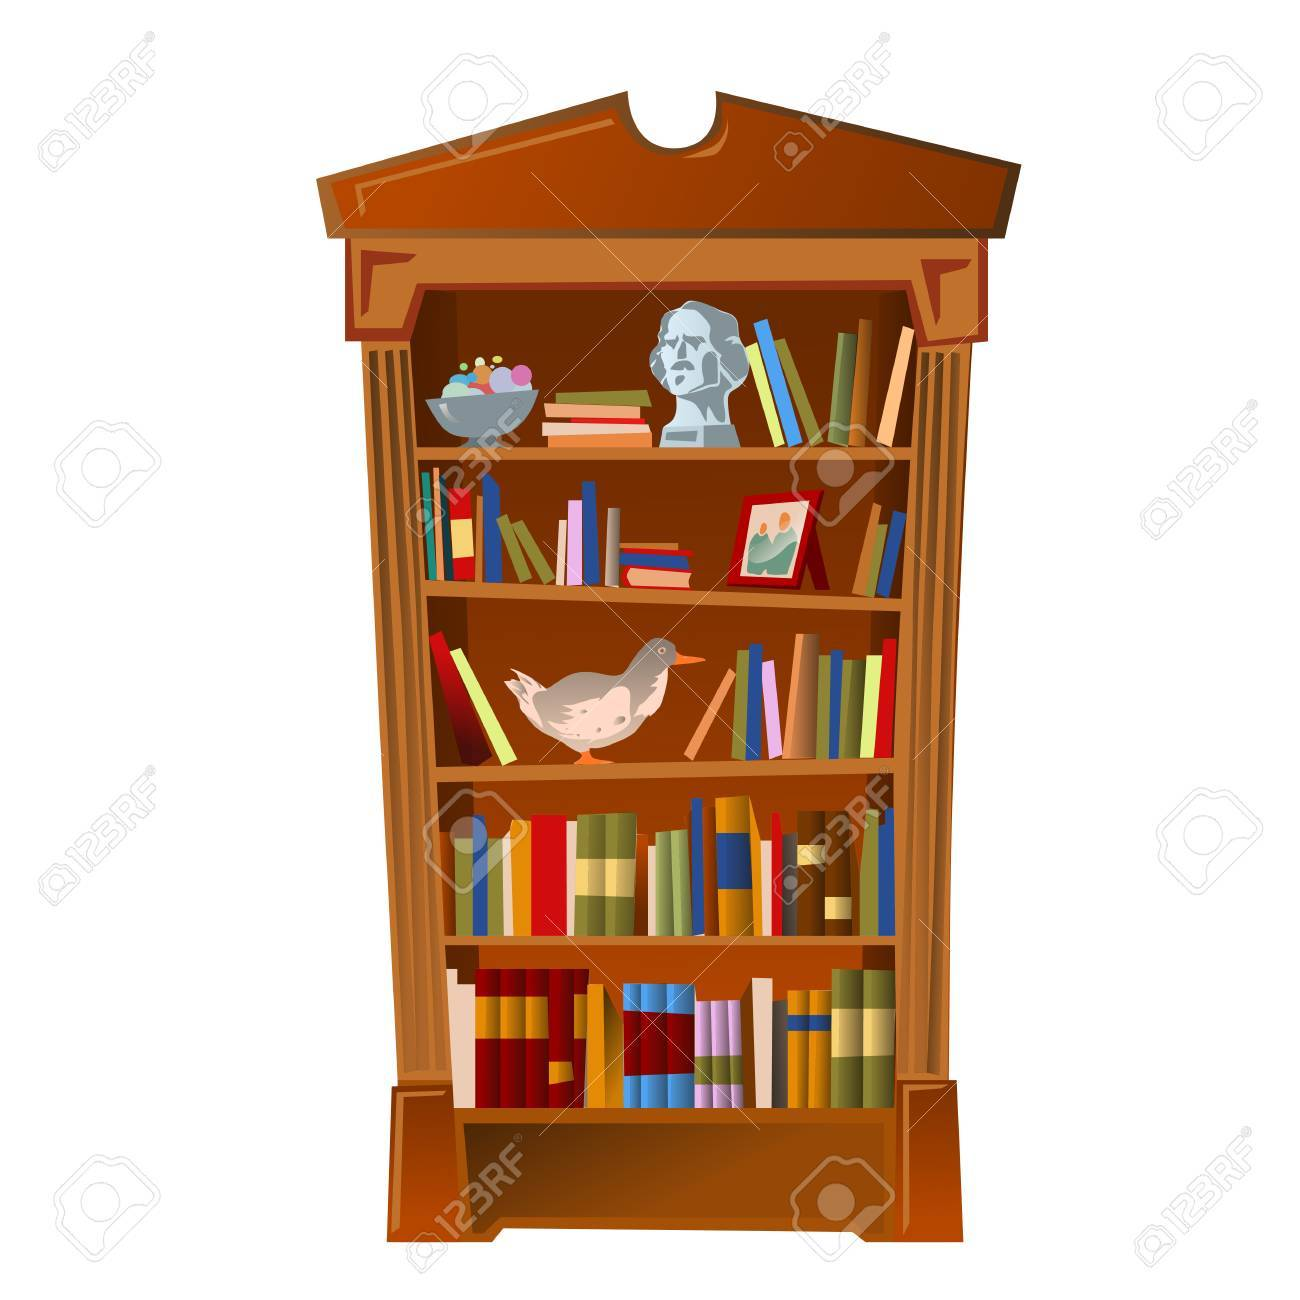 Bookshelf With Bust Photo Frame And Toy Furniture Interior On A White Background Stock